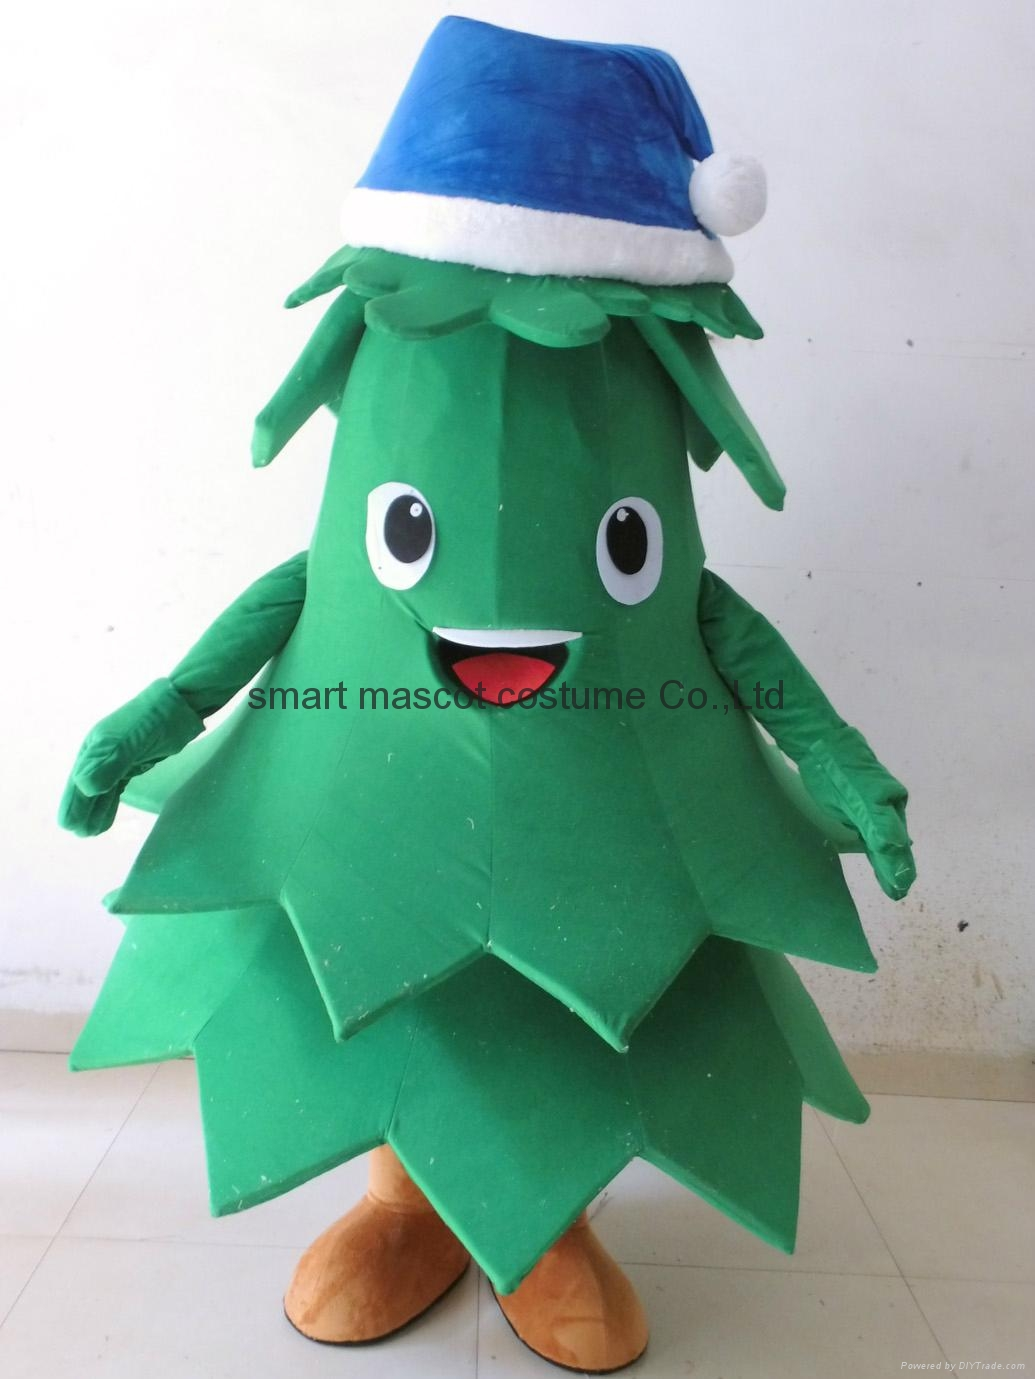 adult Christmas Tree mascot costume & adult Christmas Tree mascot costume - China - Manufacturer - holiday